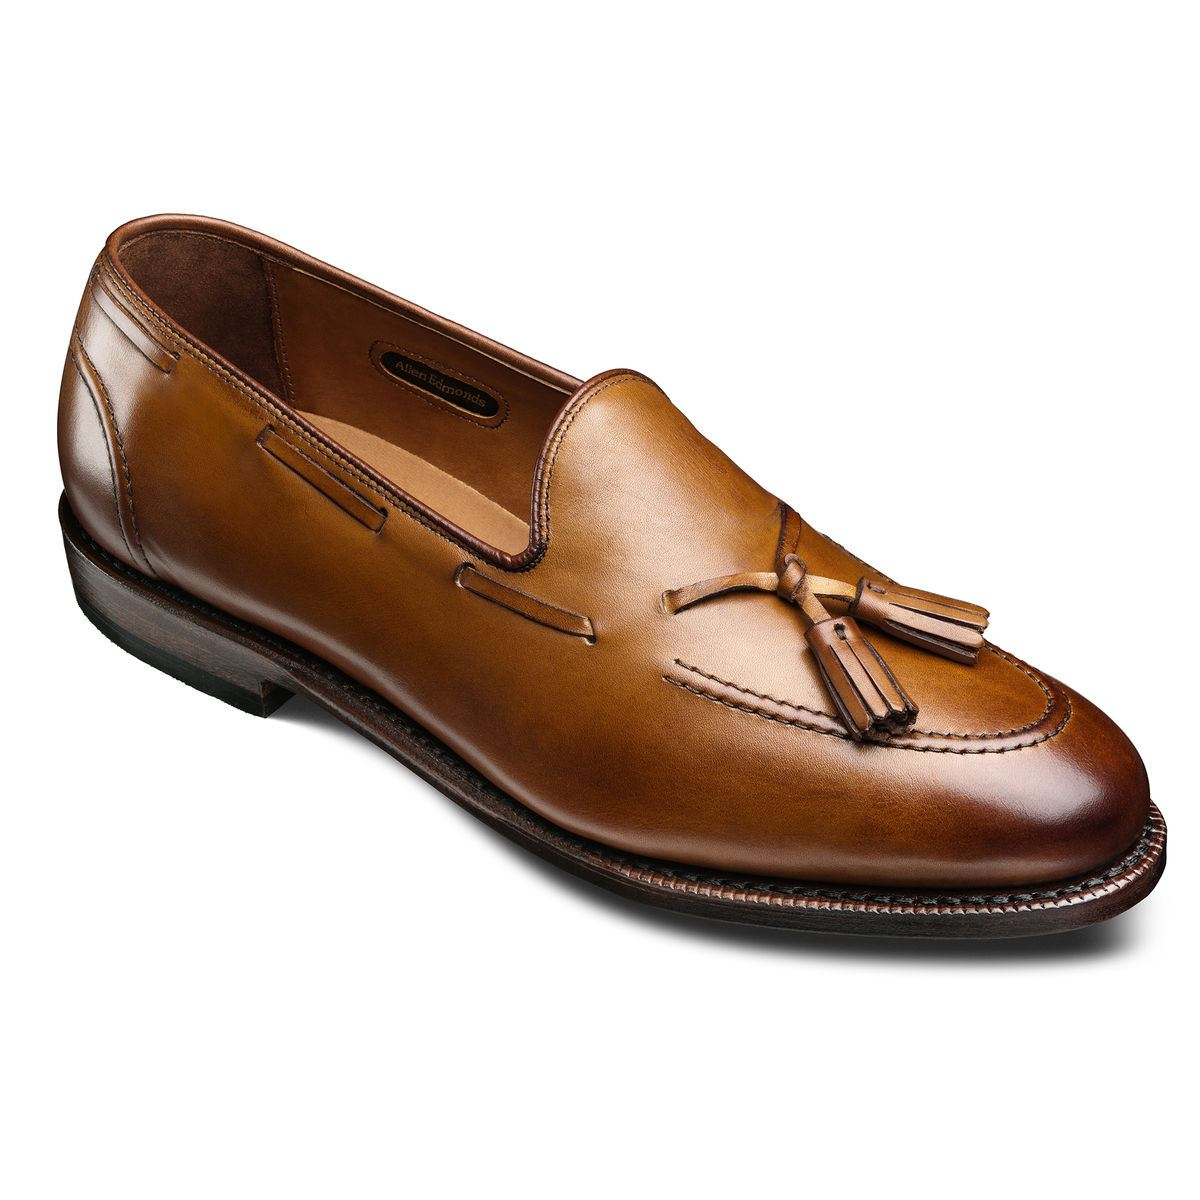 Online shopping for Allen Edmonds Anniversary Sale - Up to 35% Off Allen Edmonds Men's Shoes from a great selection at Clothing, Shoes & Jewelry Store.